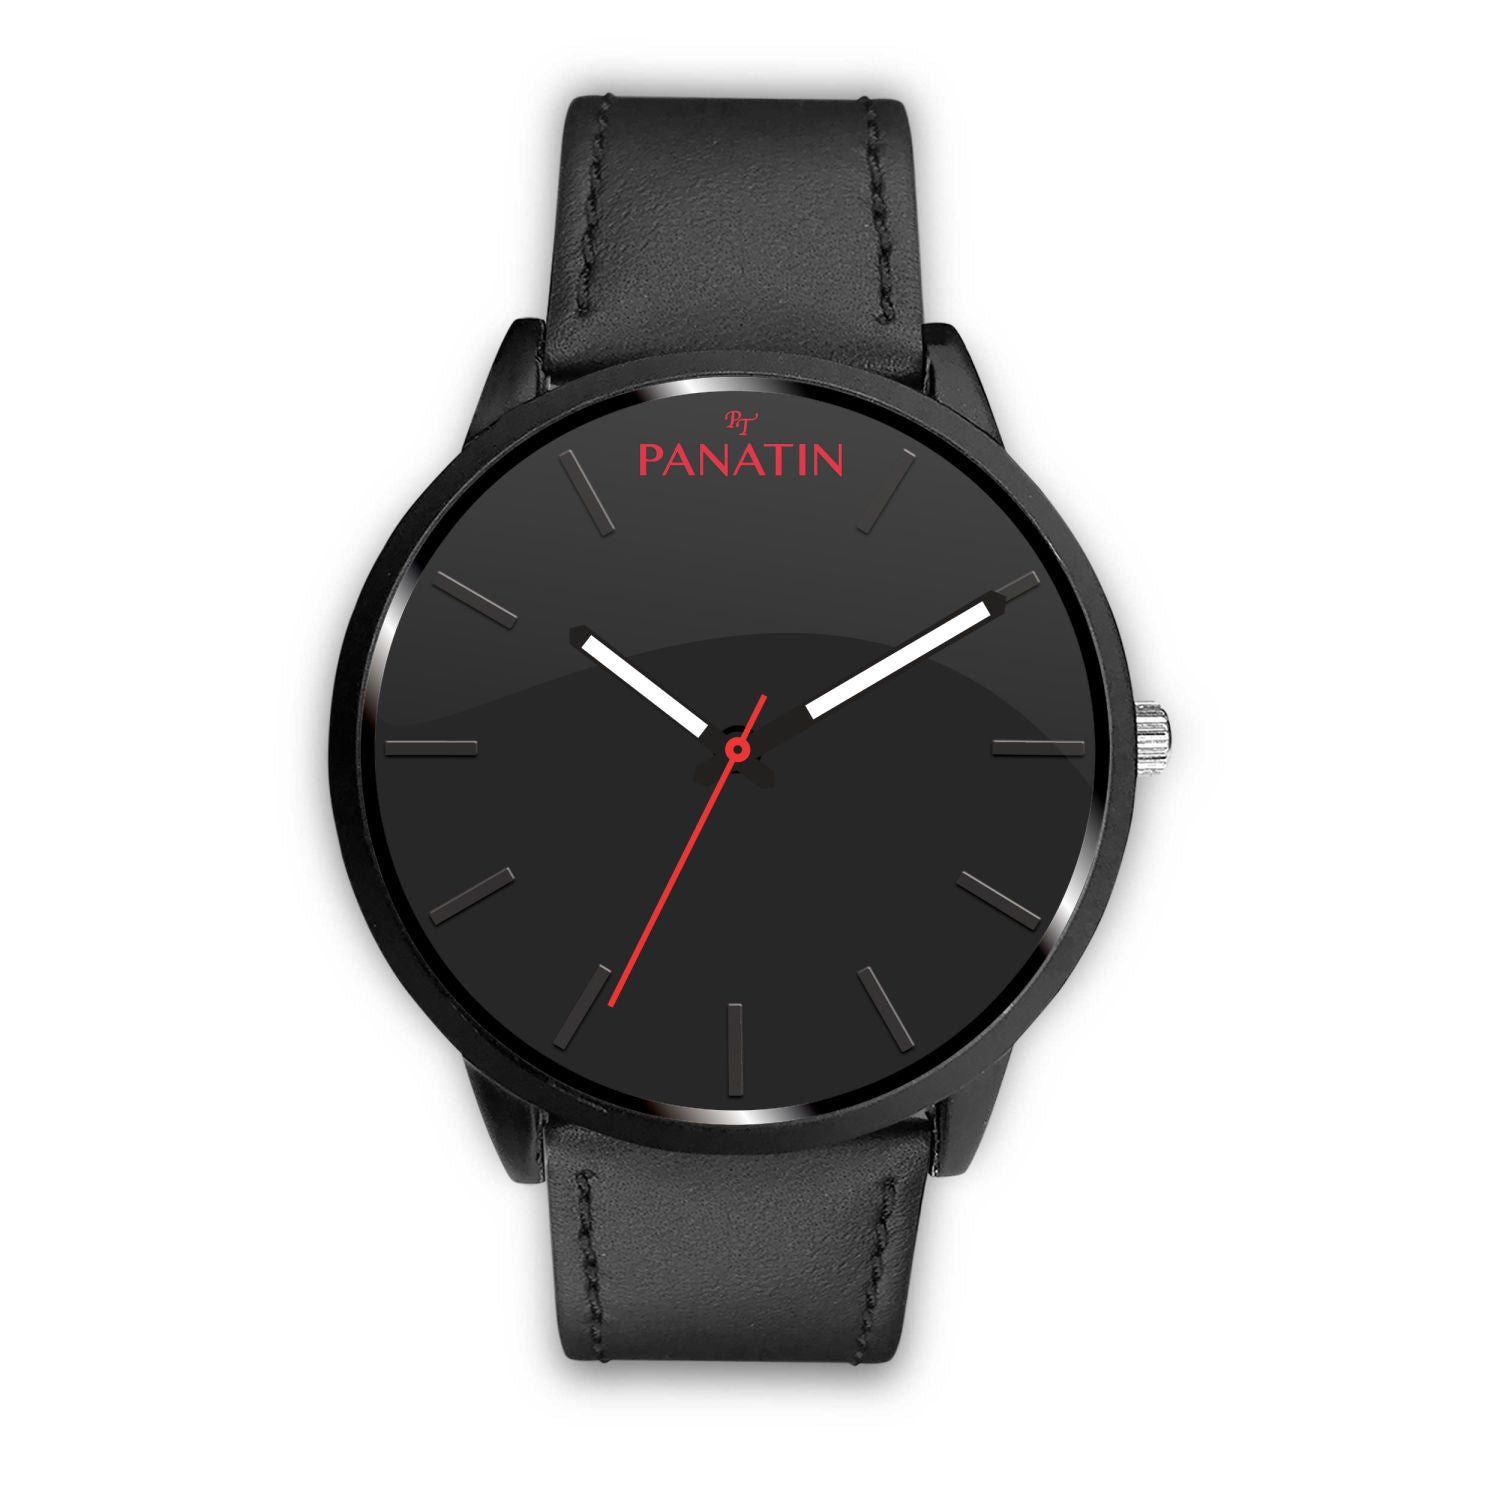 Awesome Classic Black PANATIN Watch